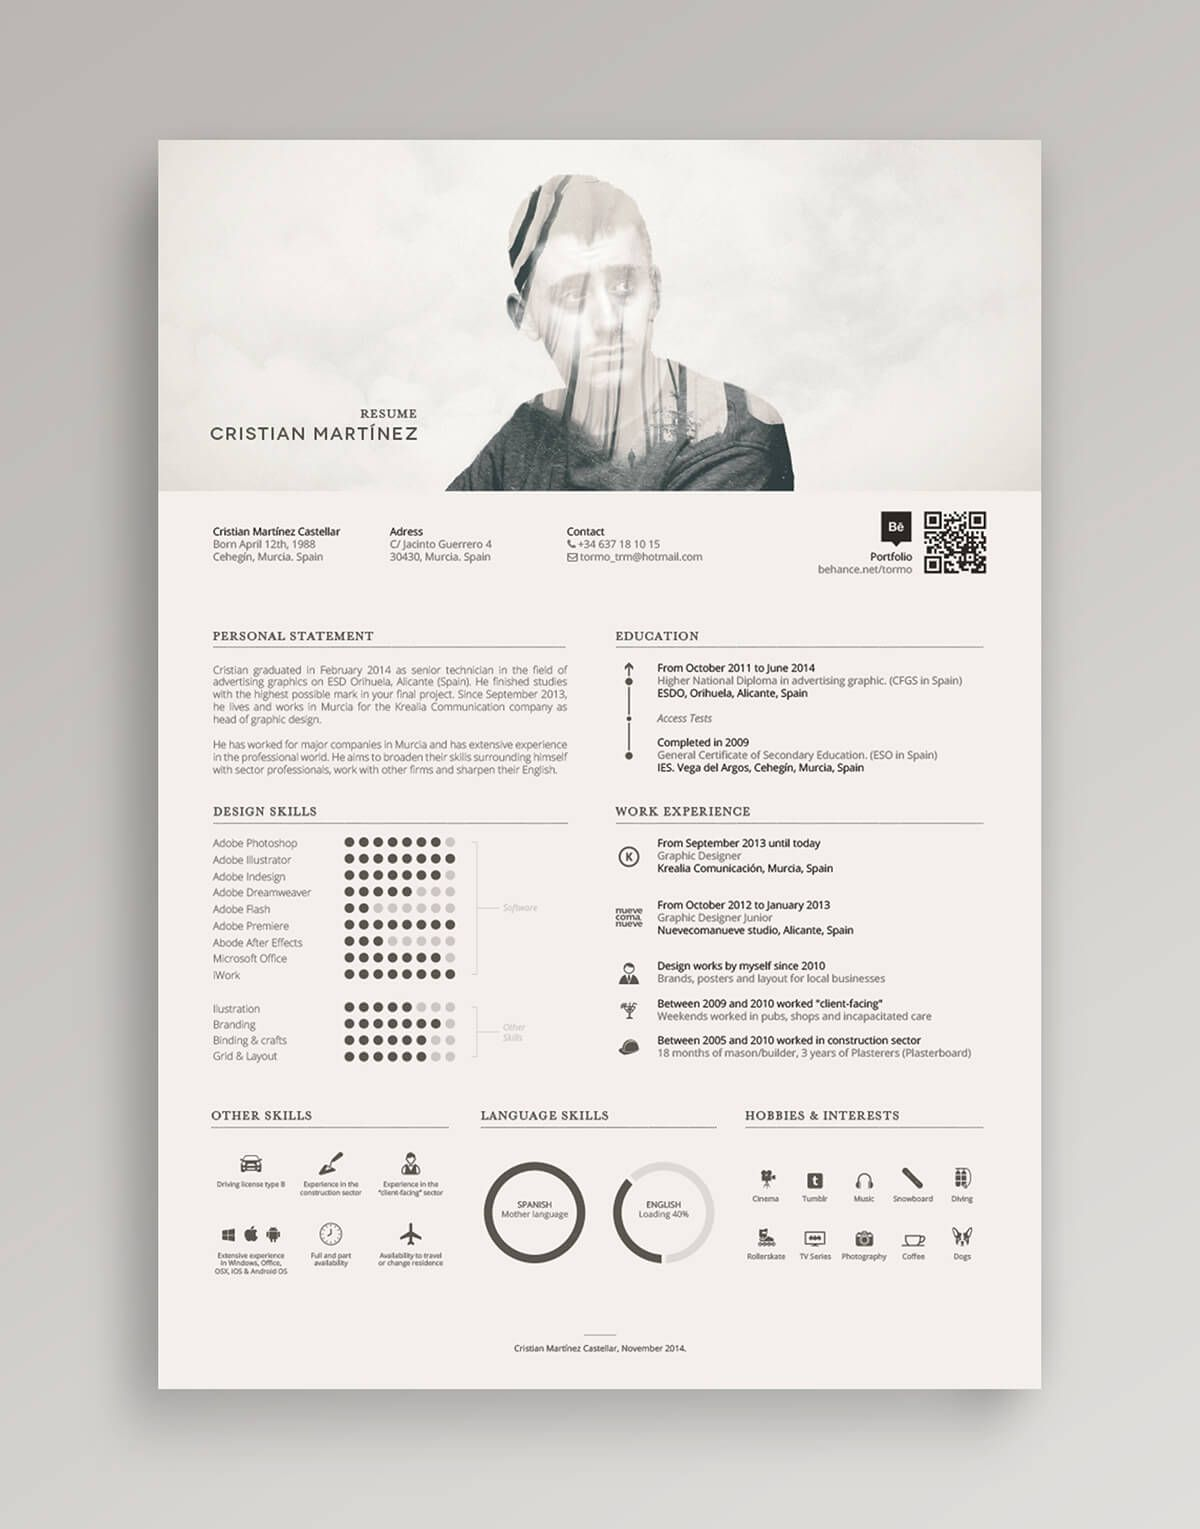 Make an enduring first impression on hirers with a bold and original resume [free templates]